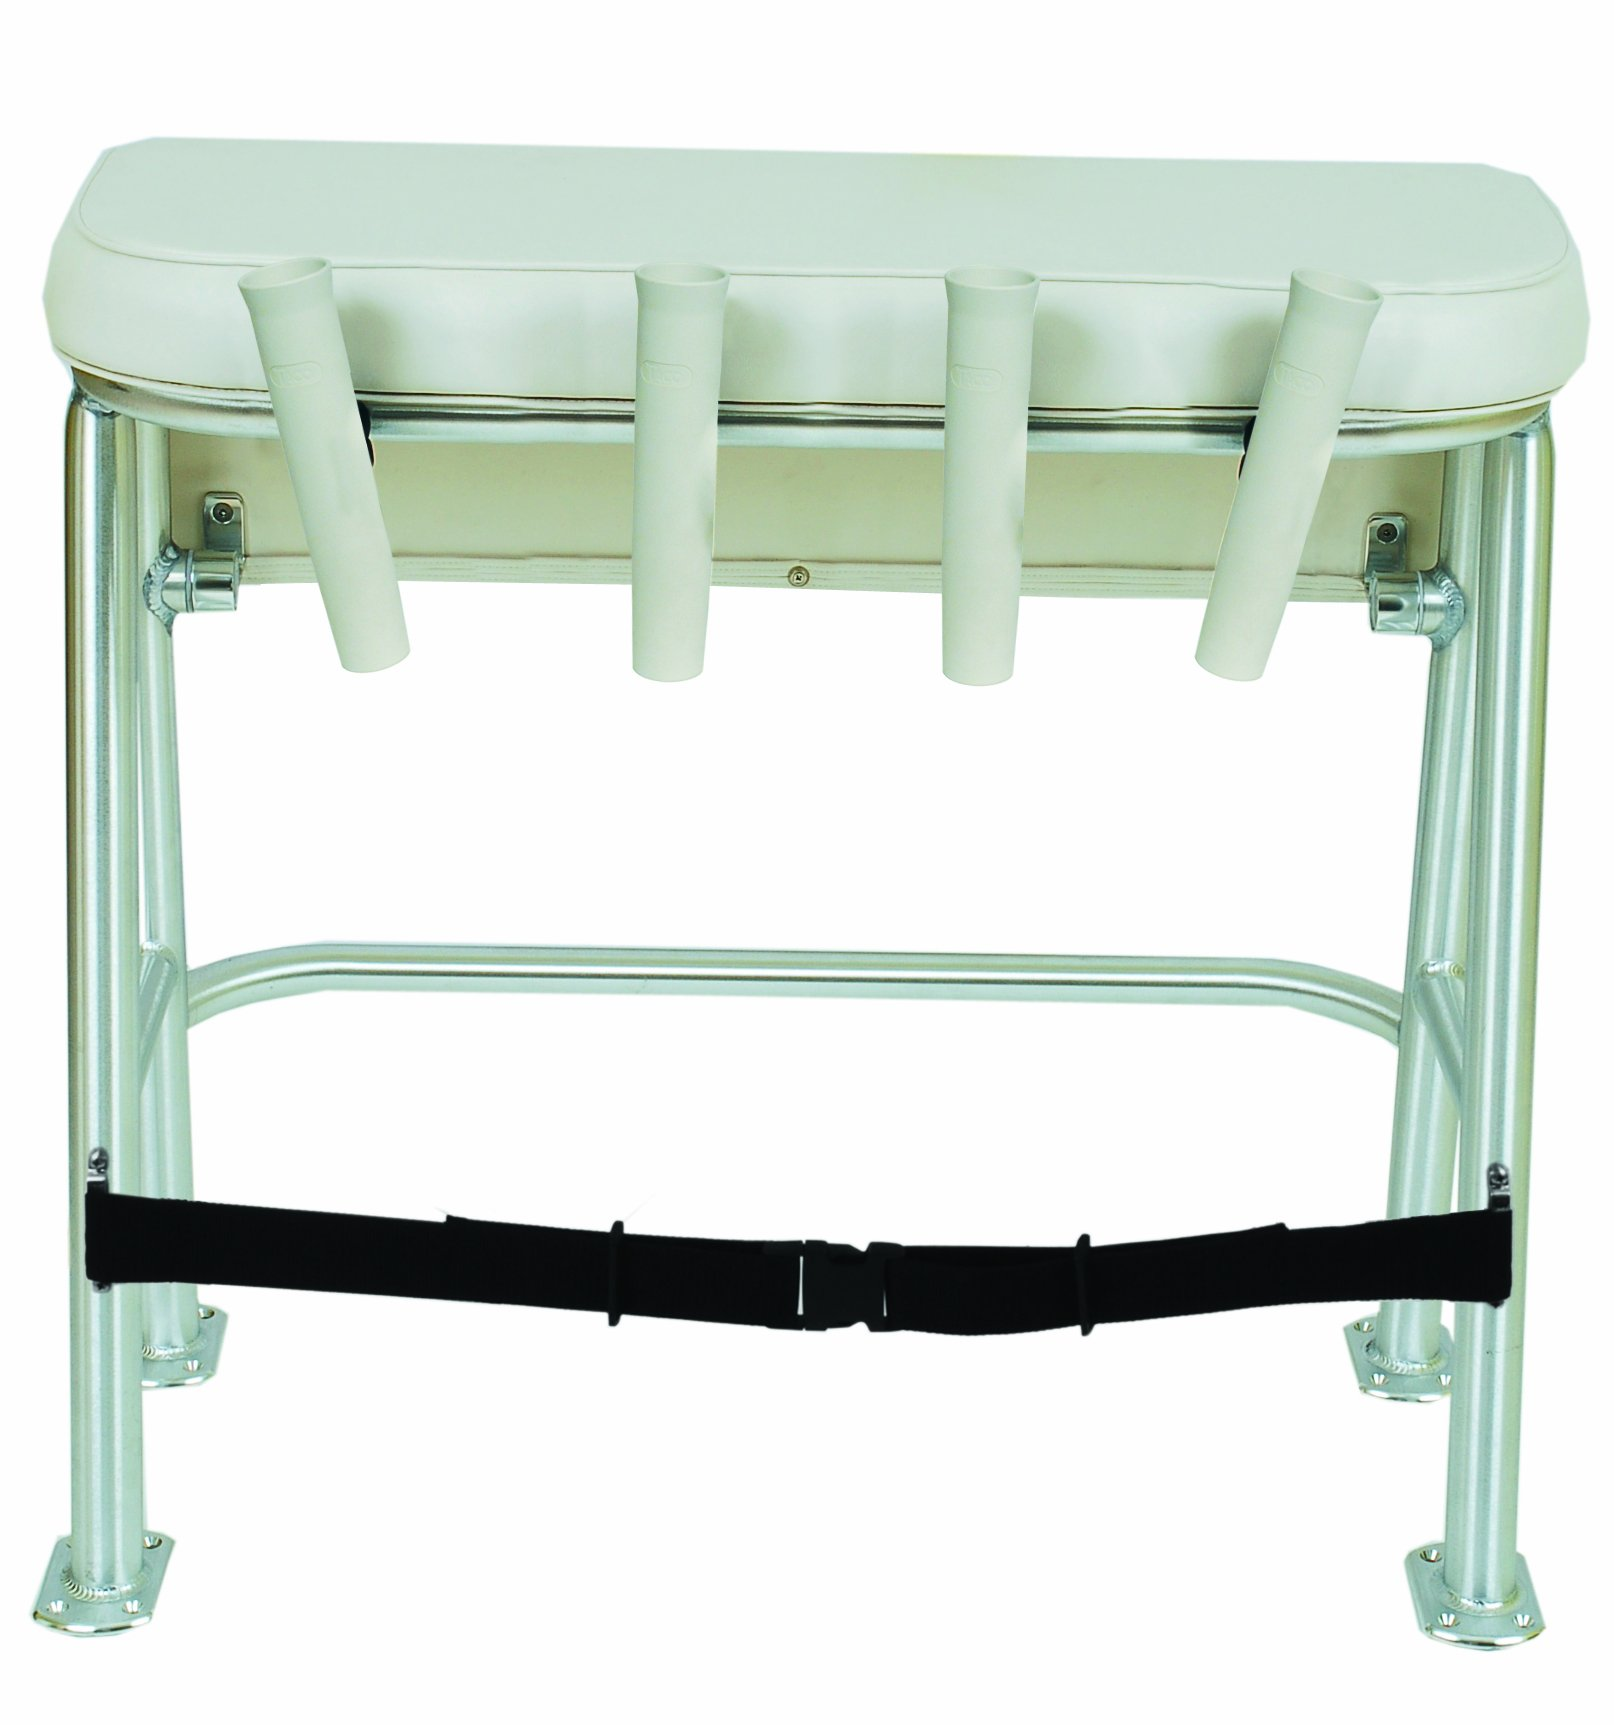 Taco Metals Neptune III Leaning Post with Smooth White Upholstery and 4 Poly Rod Holders